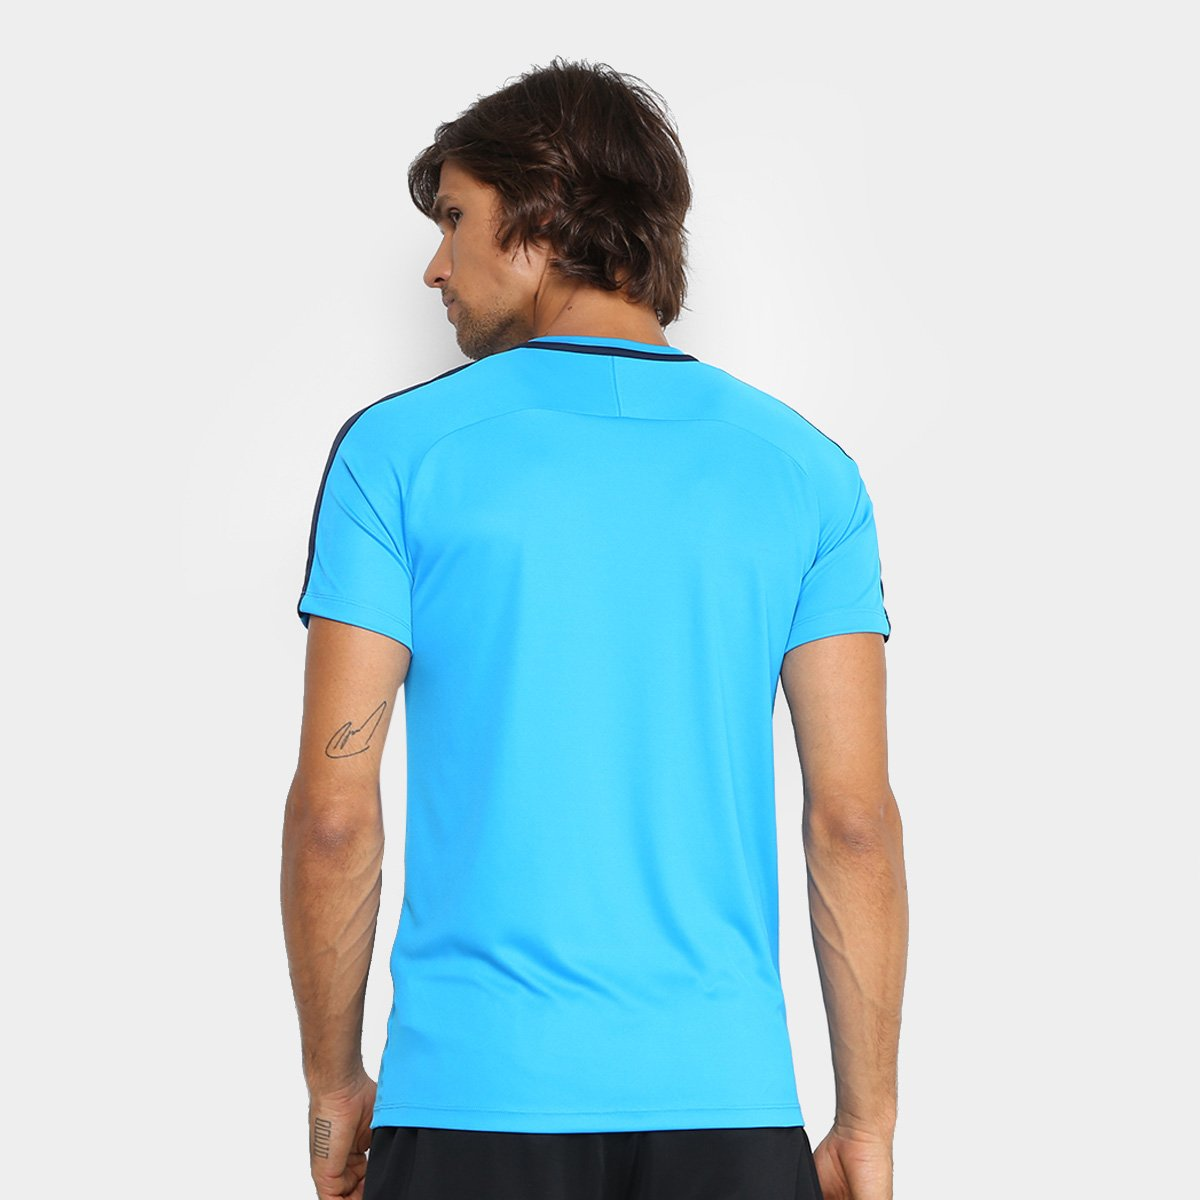 Camisa Nike Dry Academy SS GX Masculina - Compre Agora  1d1a0344eeb0c